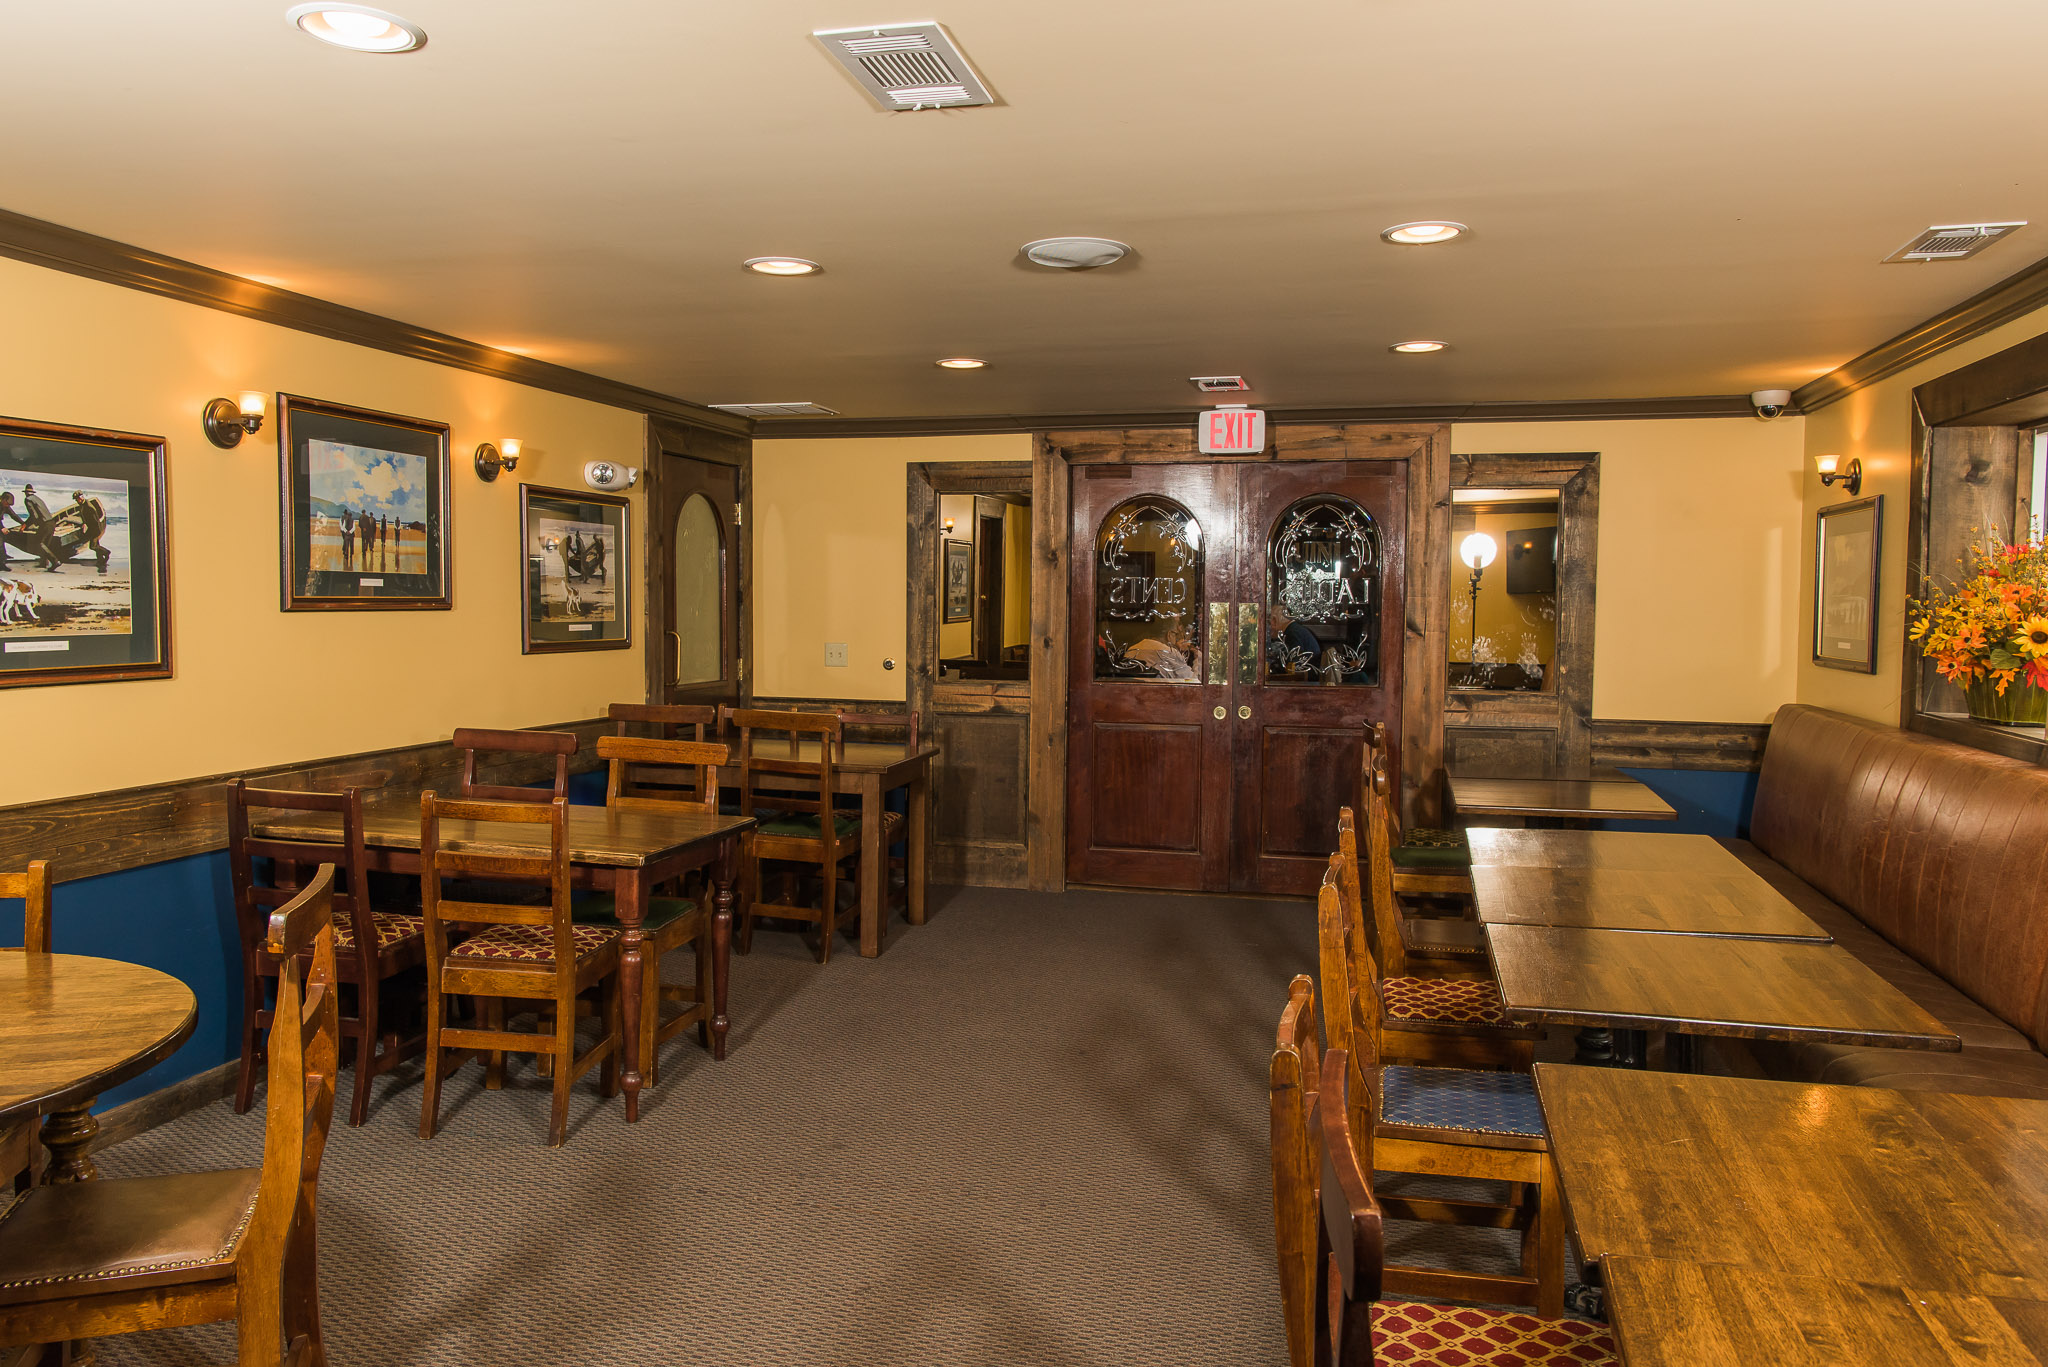 upick6 Public House Function Room